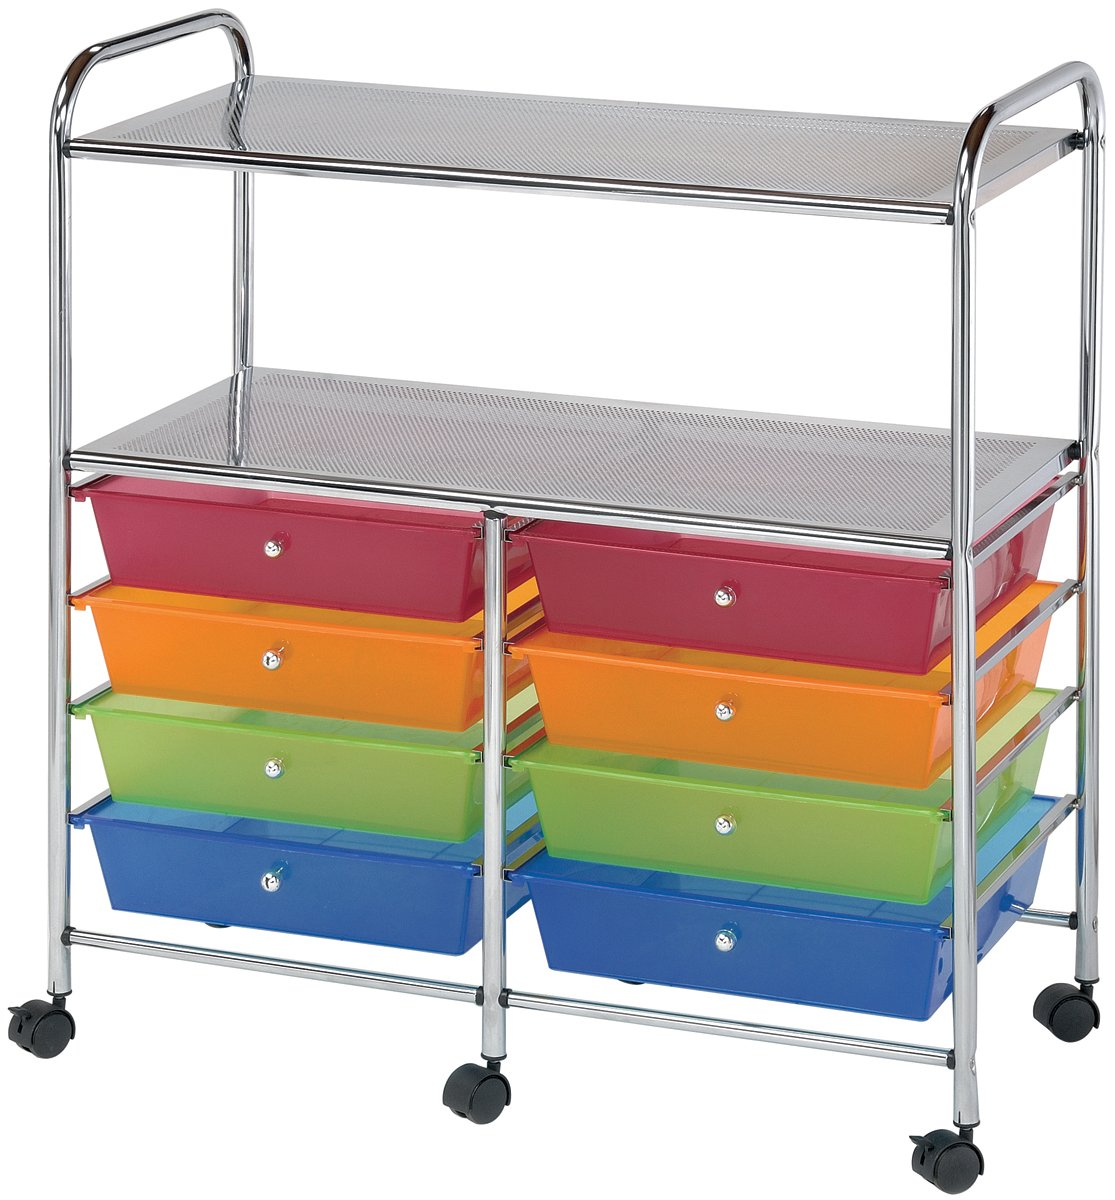 wrapping racks paper rolling drawers ebay storage it buy now organizer and trolley on gift craft white only cart pin drawer tote